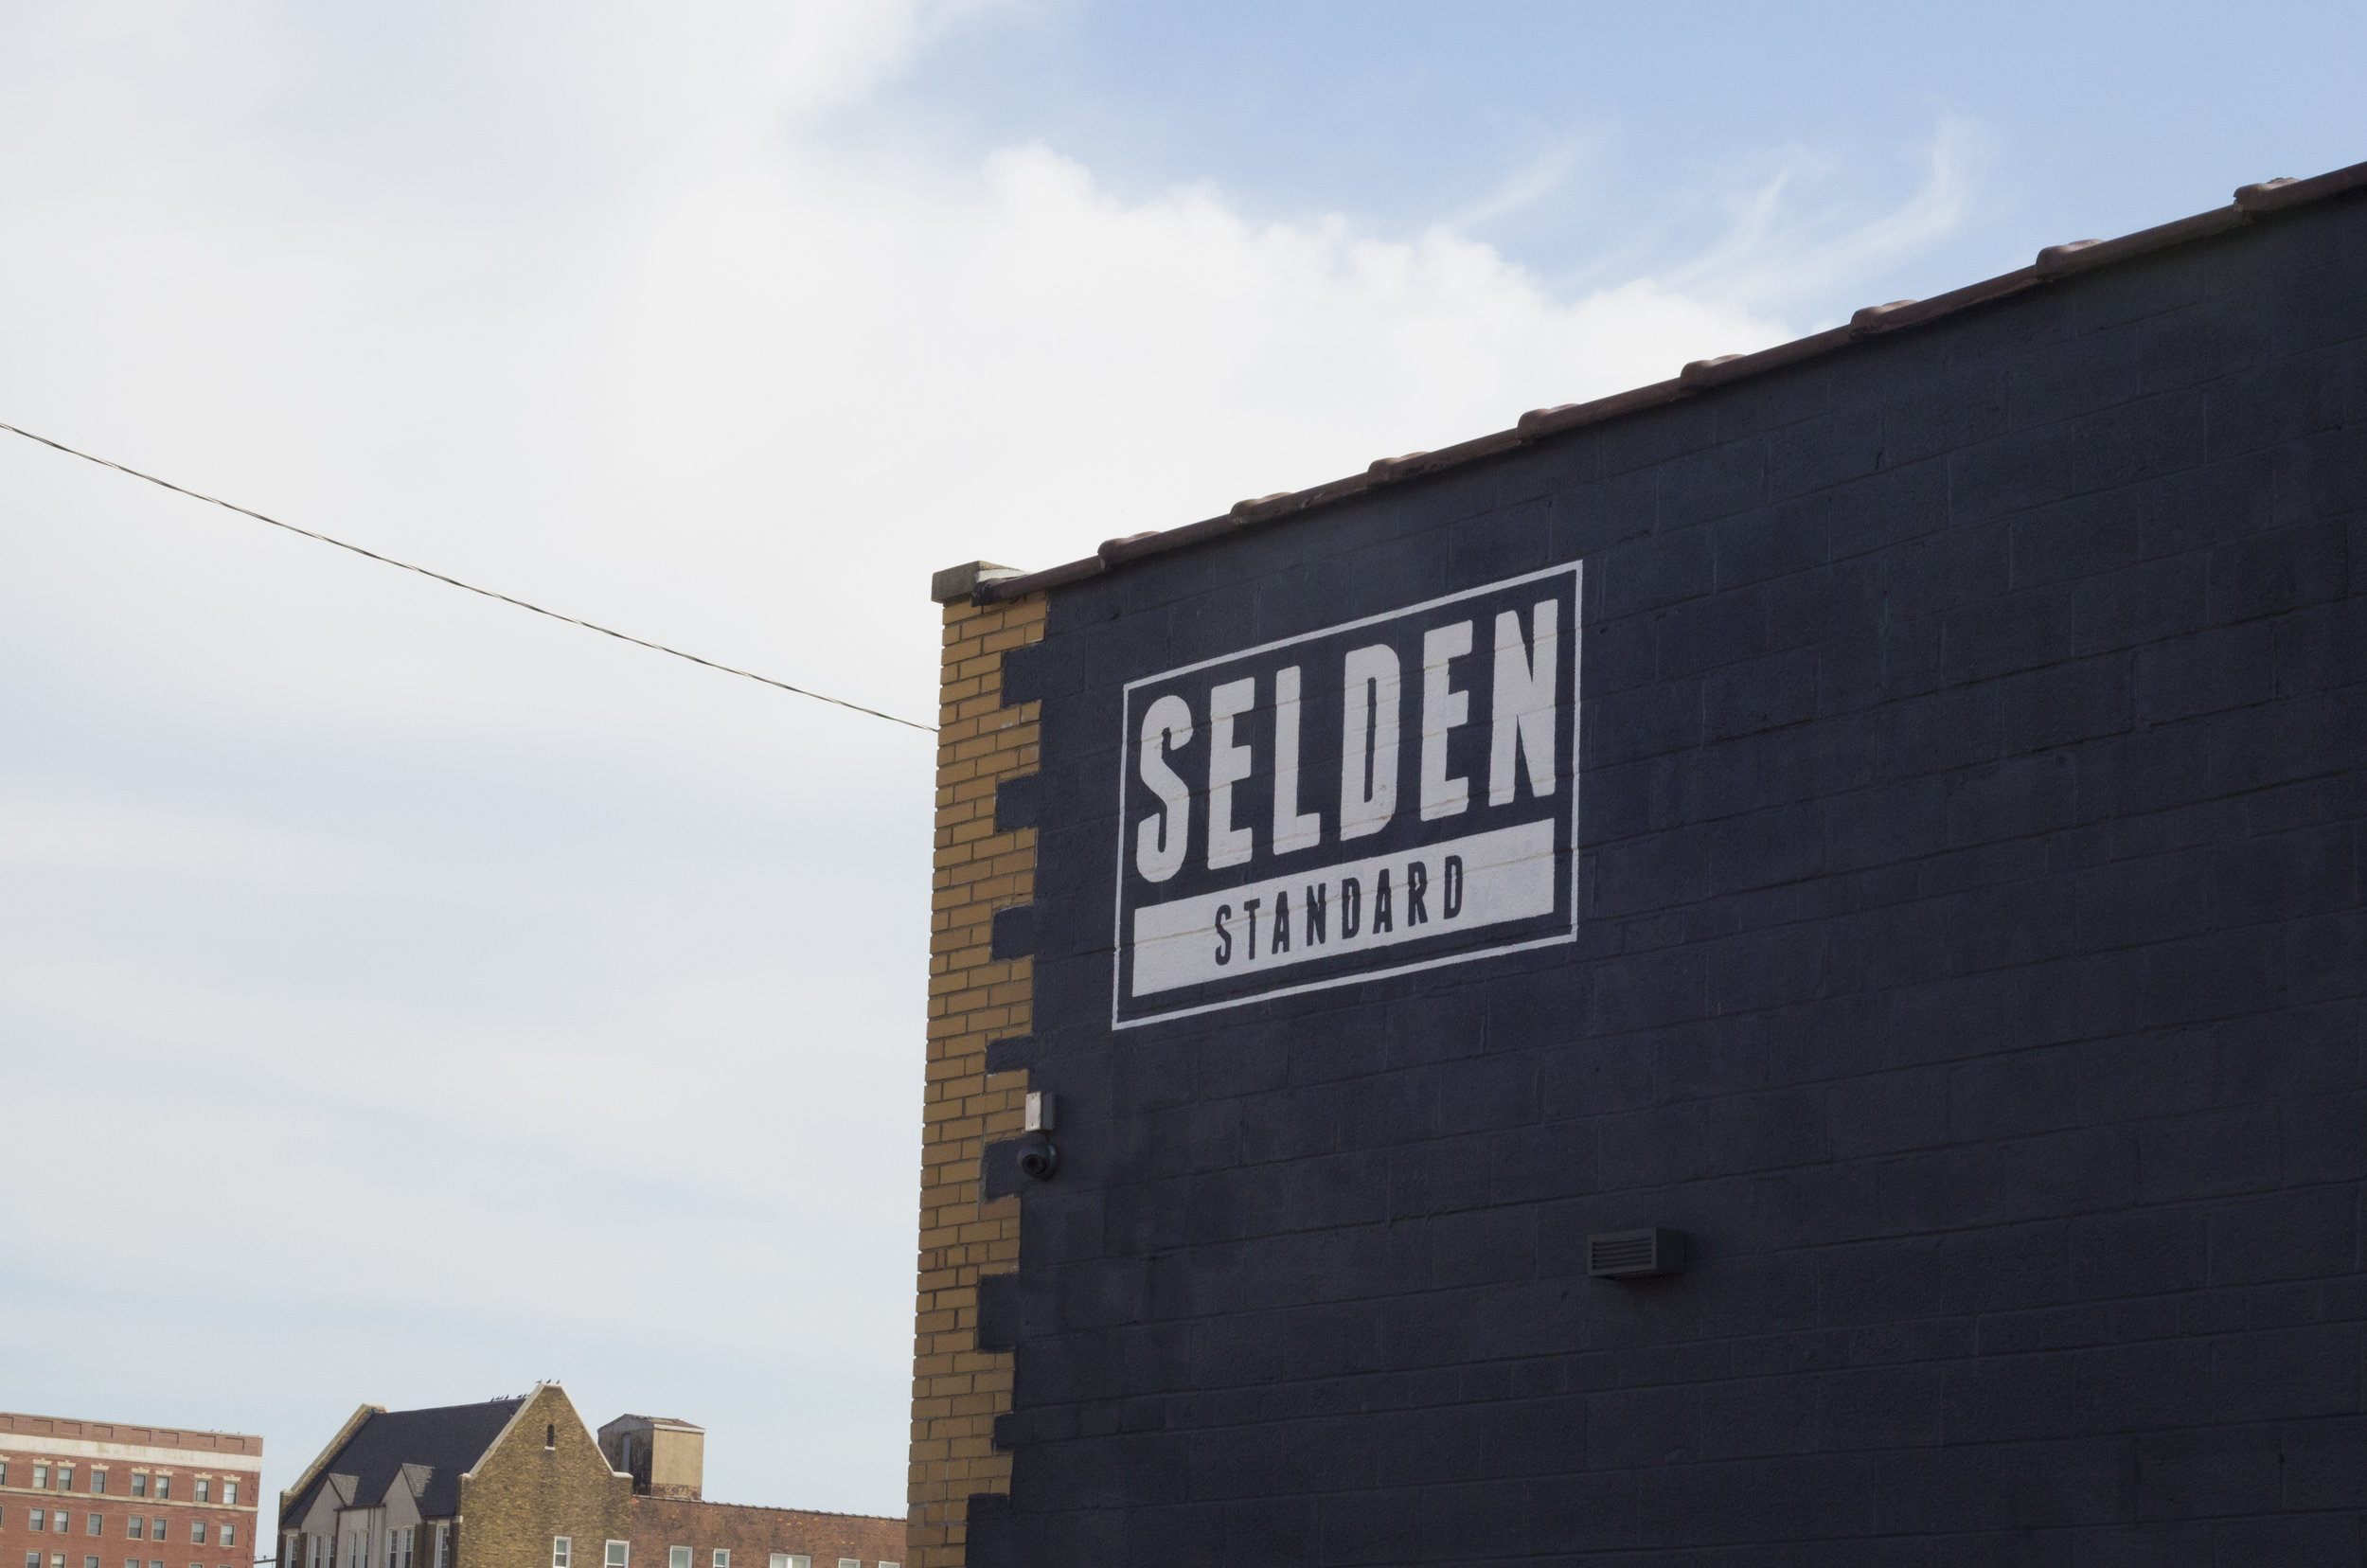 Selden Standard in Midtown was nominated as the Detroit Free Press Restaurant of the Year 2015.